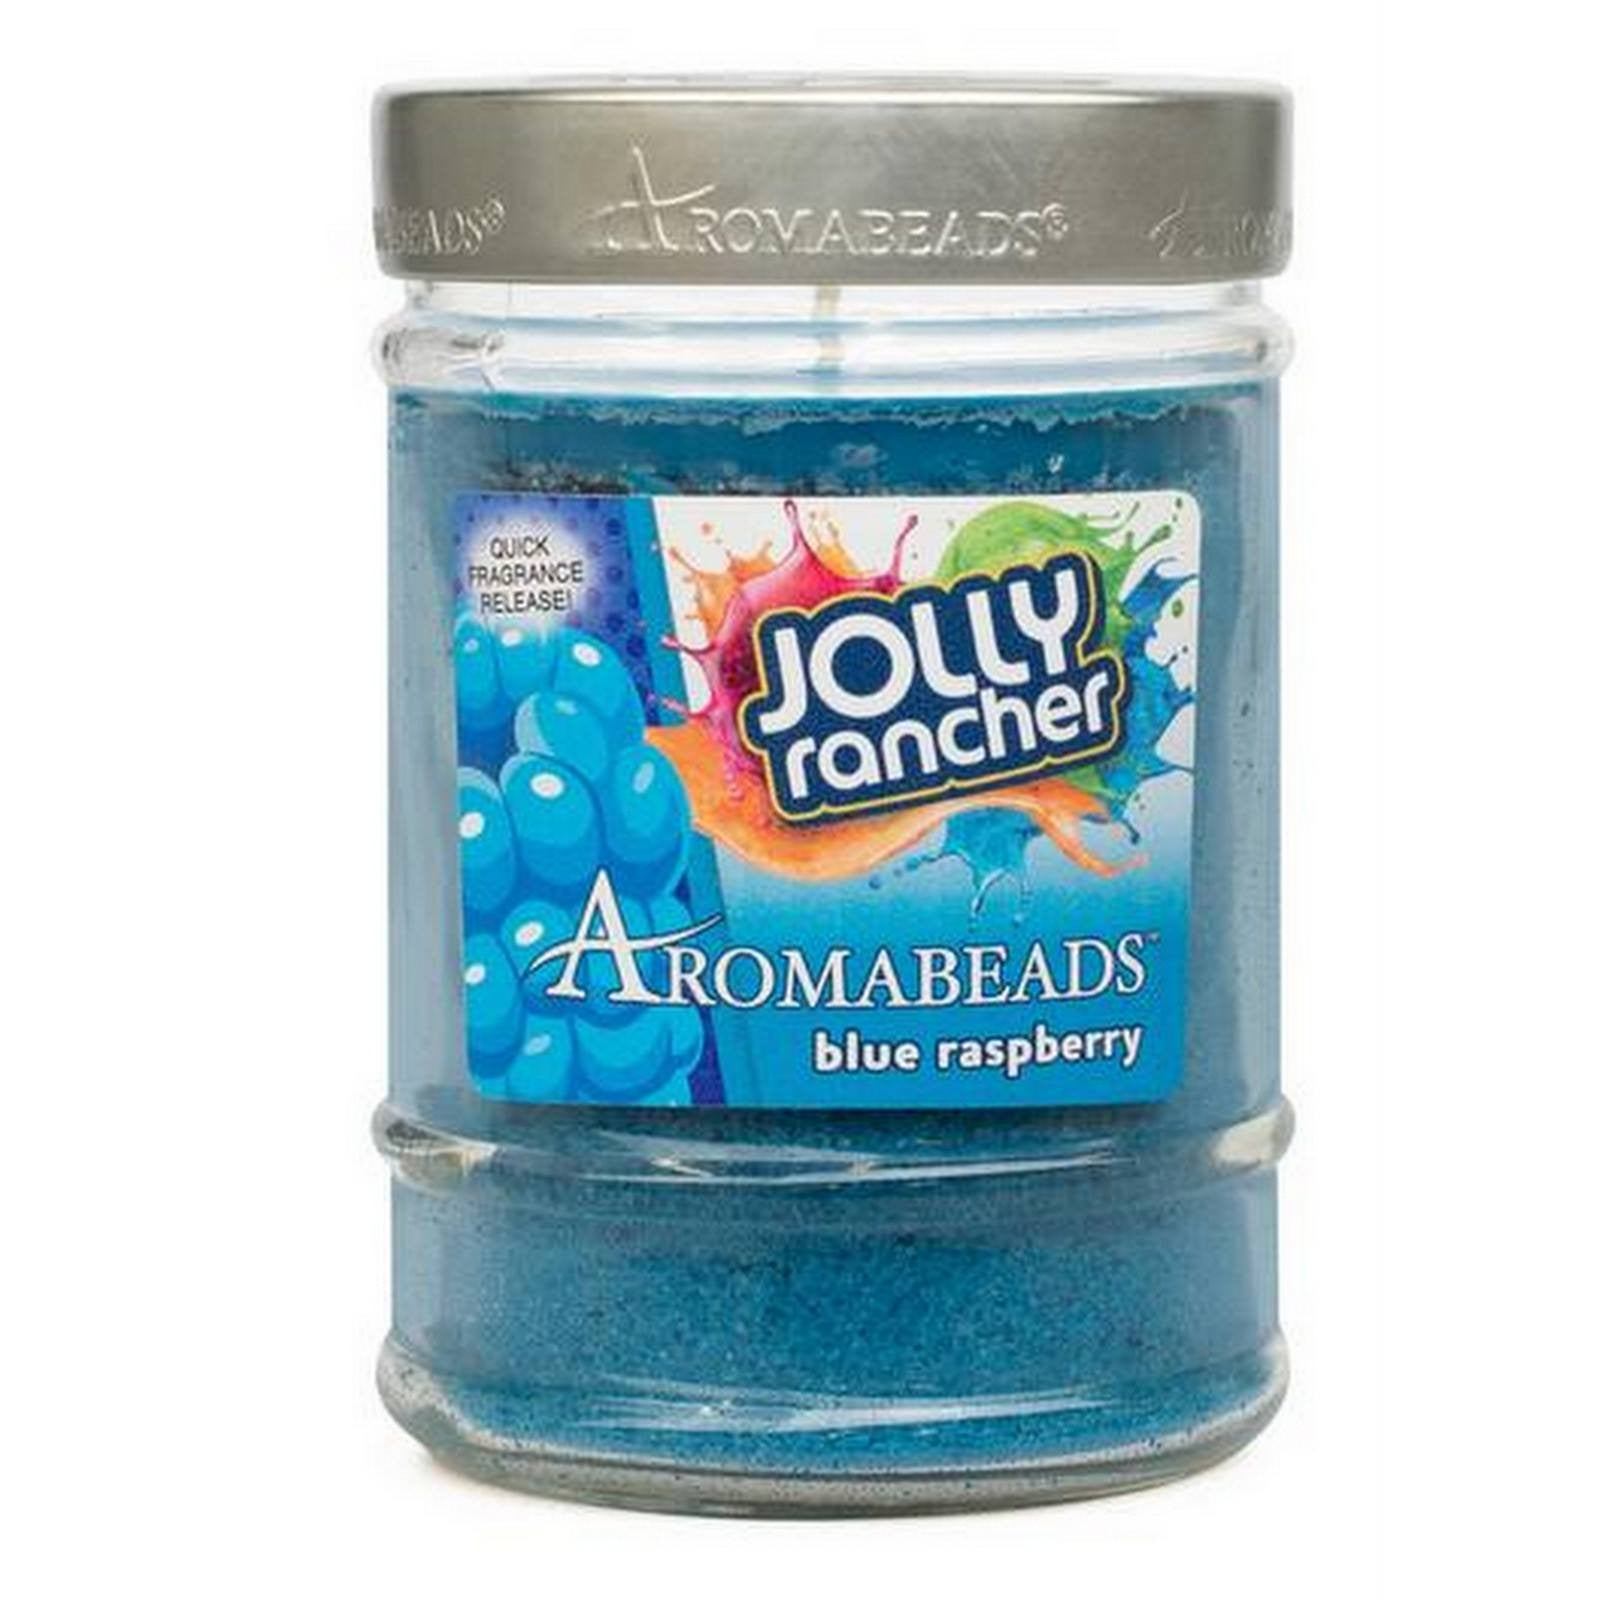 Jolly Rancher Blue Raspberry Scented Aromabeads Canister Candle - Candlemart.com